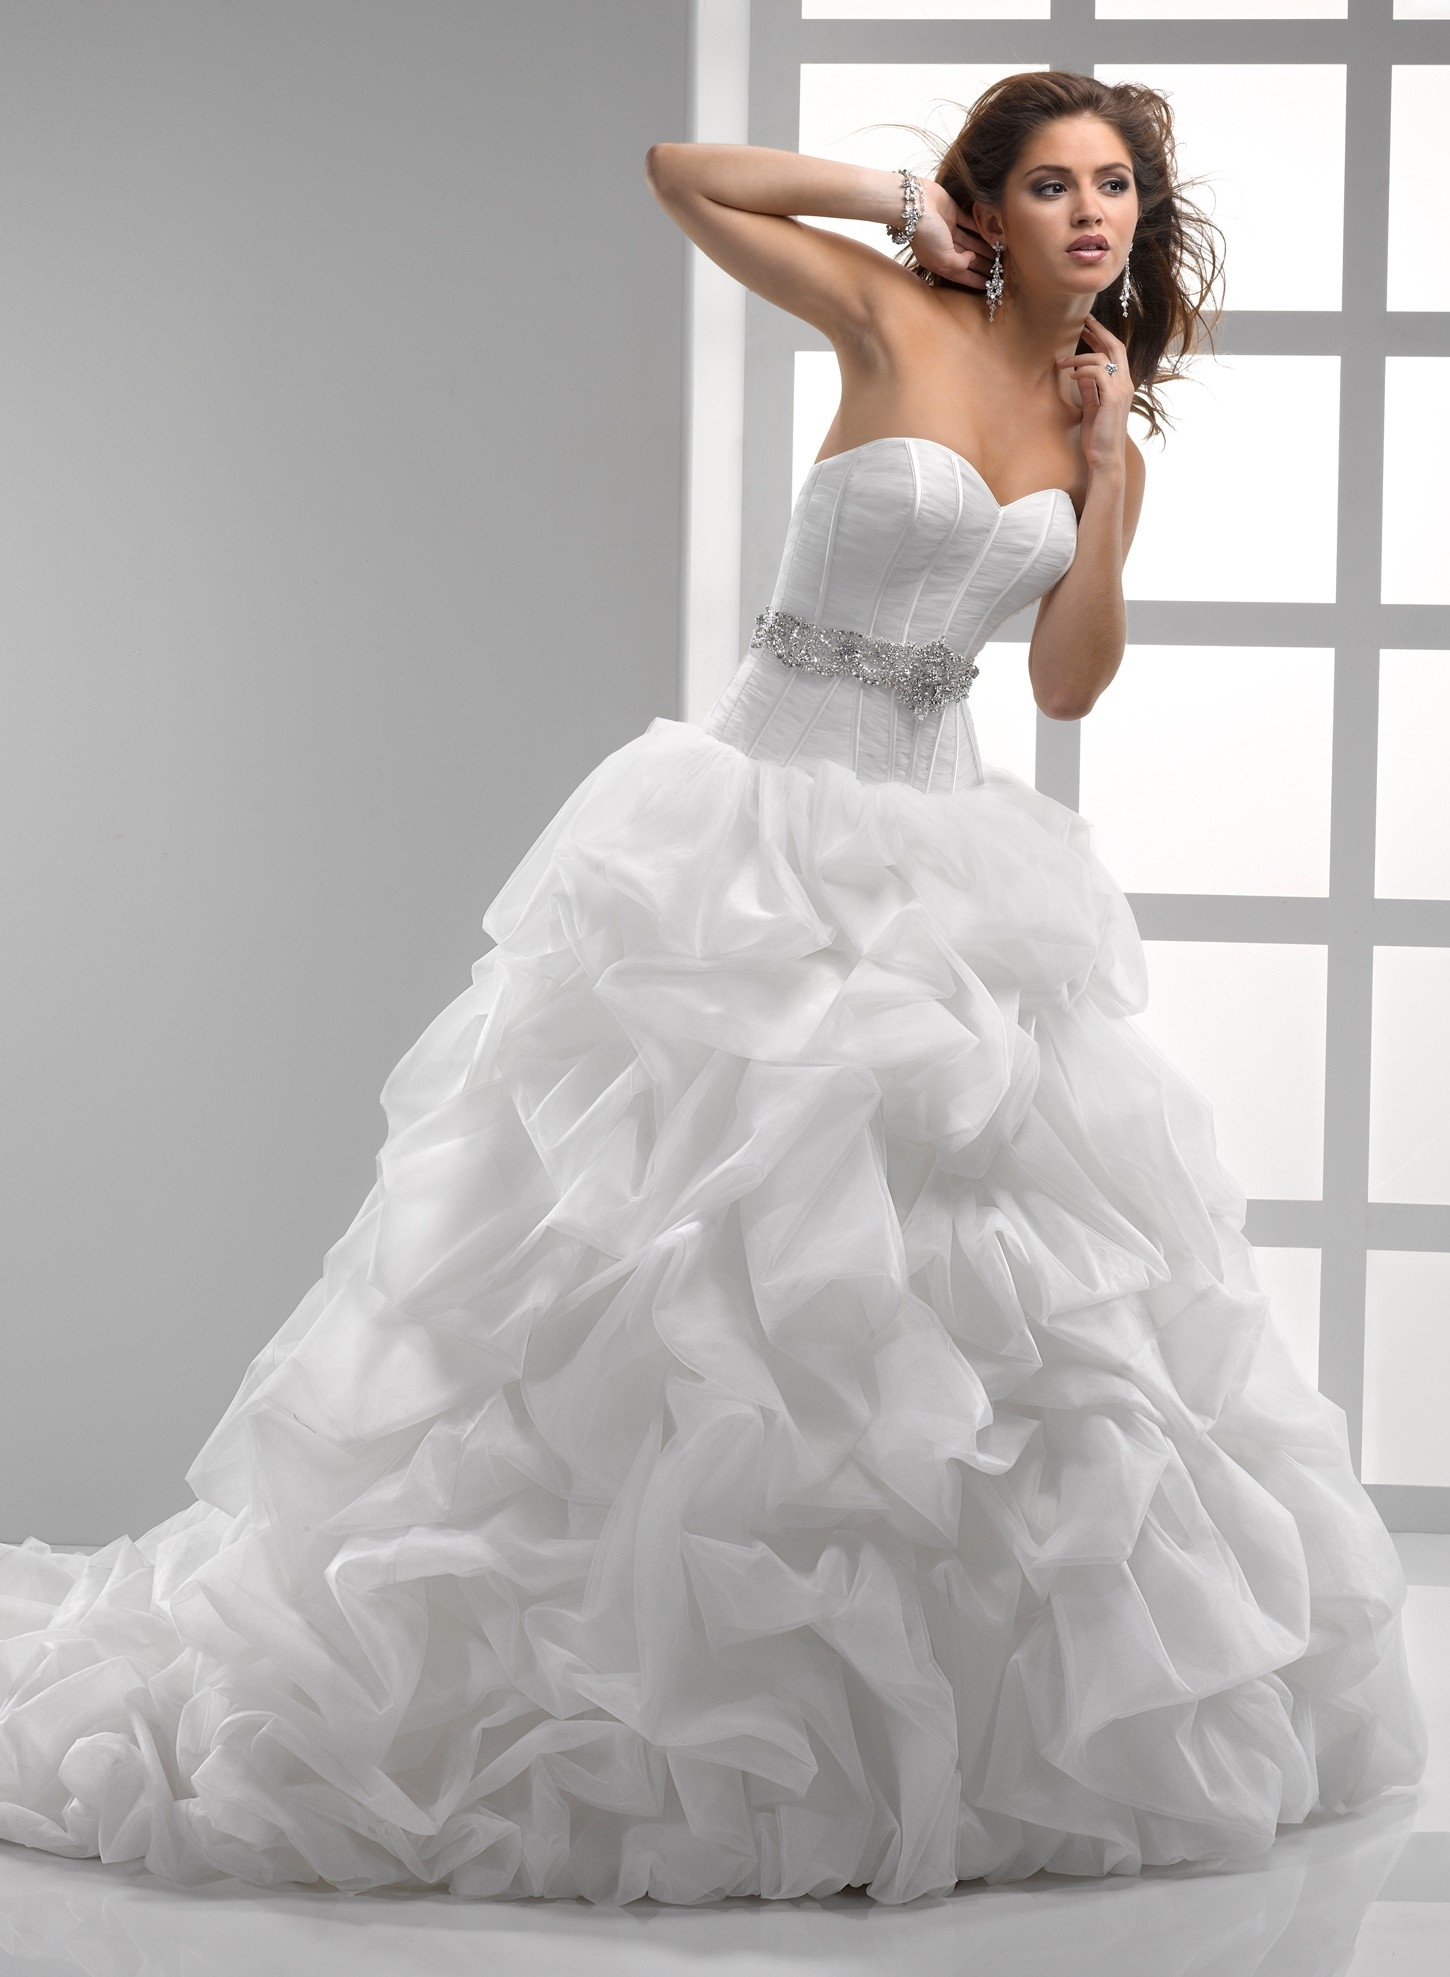 Light Tulle & Chic Organza Sweetheart Bridal Gown Pictures, Photos ...